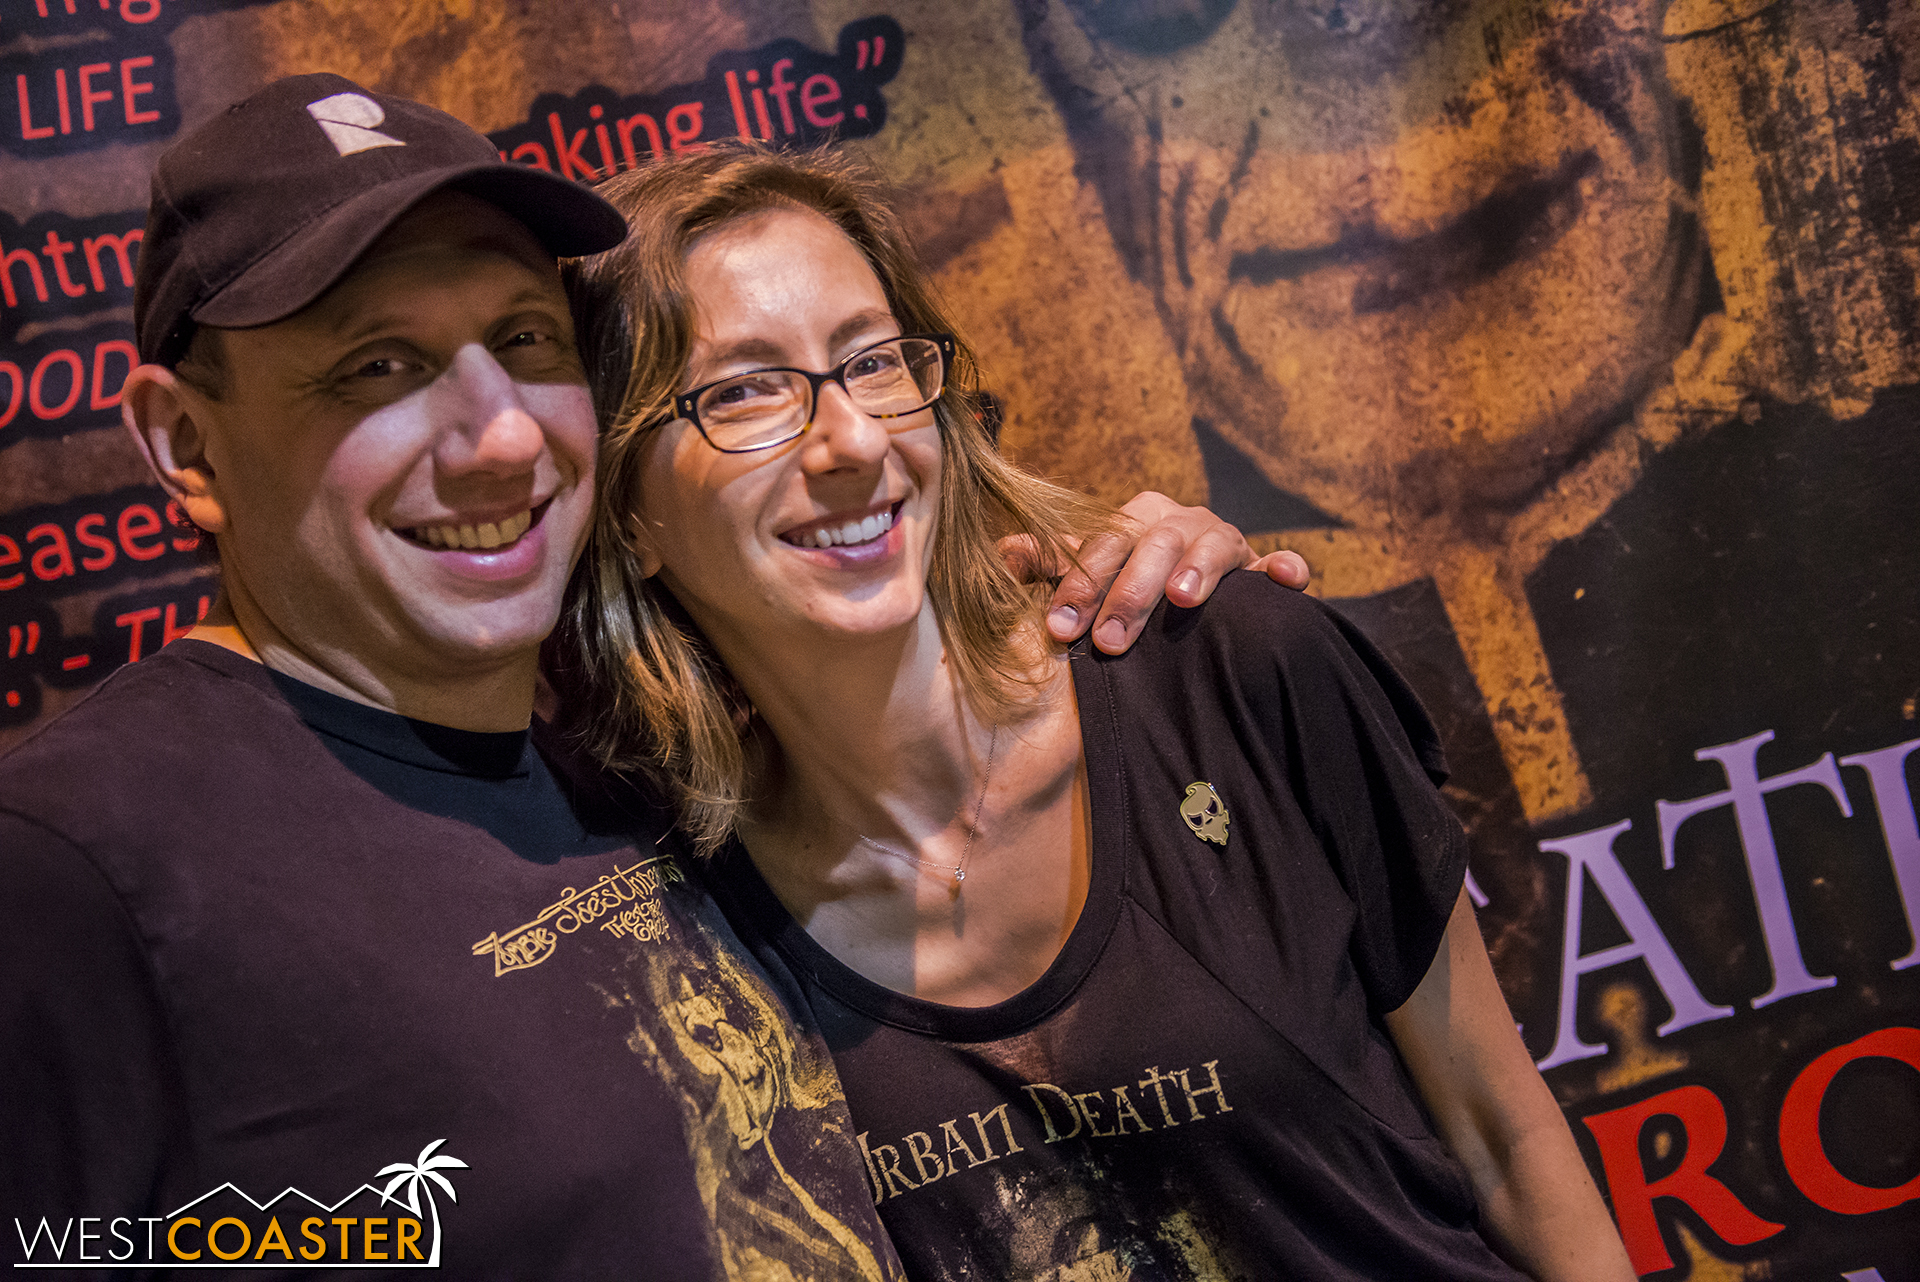 Zombie Joe with co-director, Jana Wimer, at last year's Urban Death.